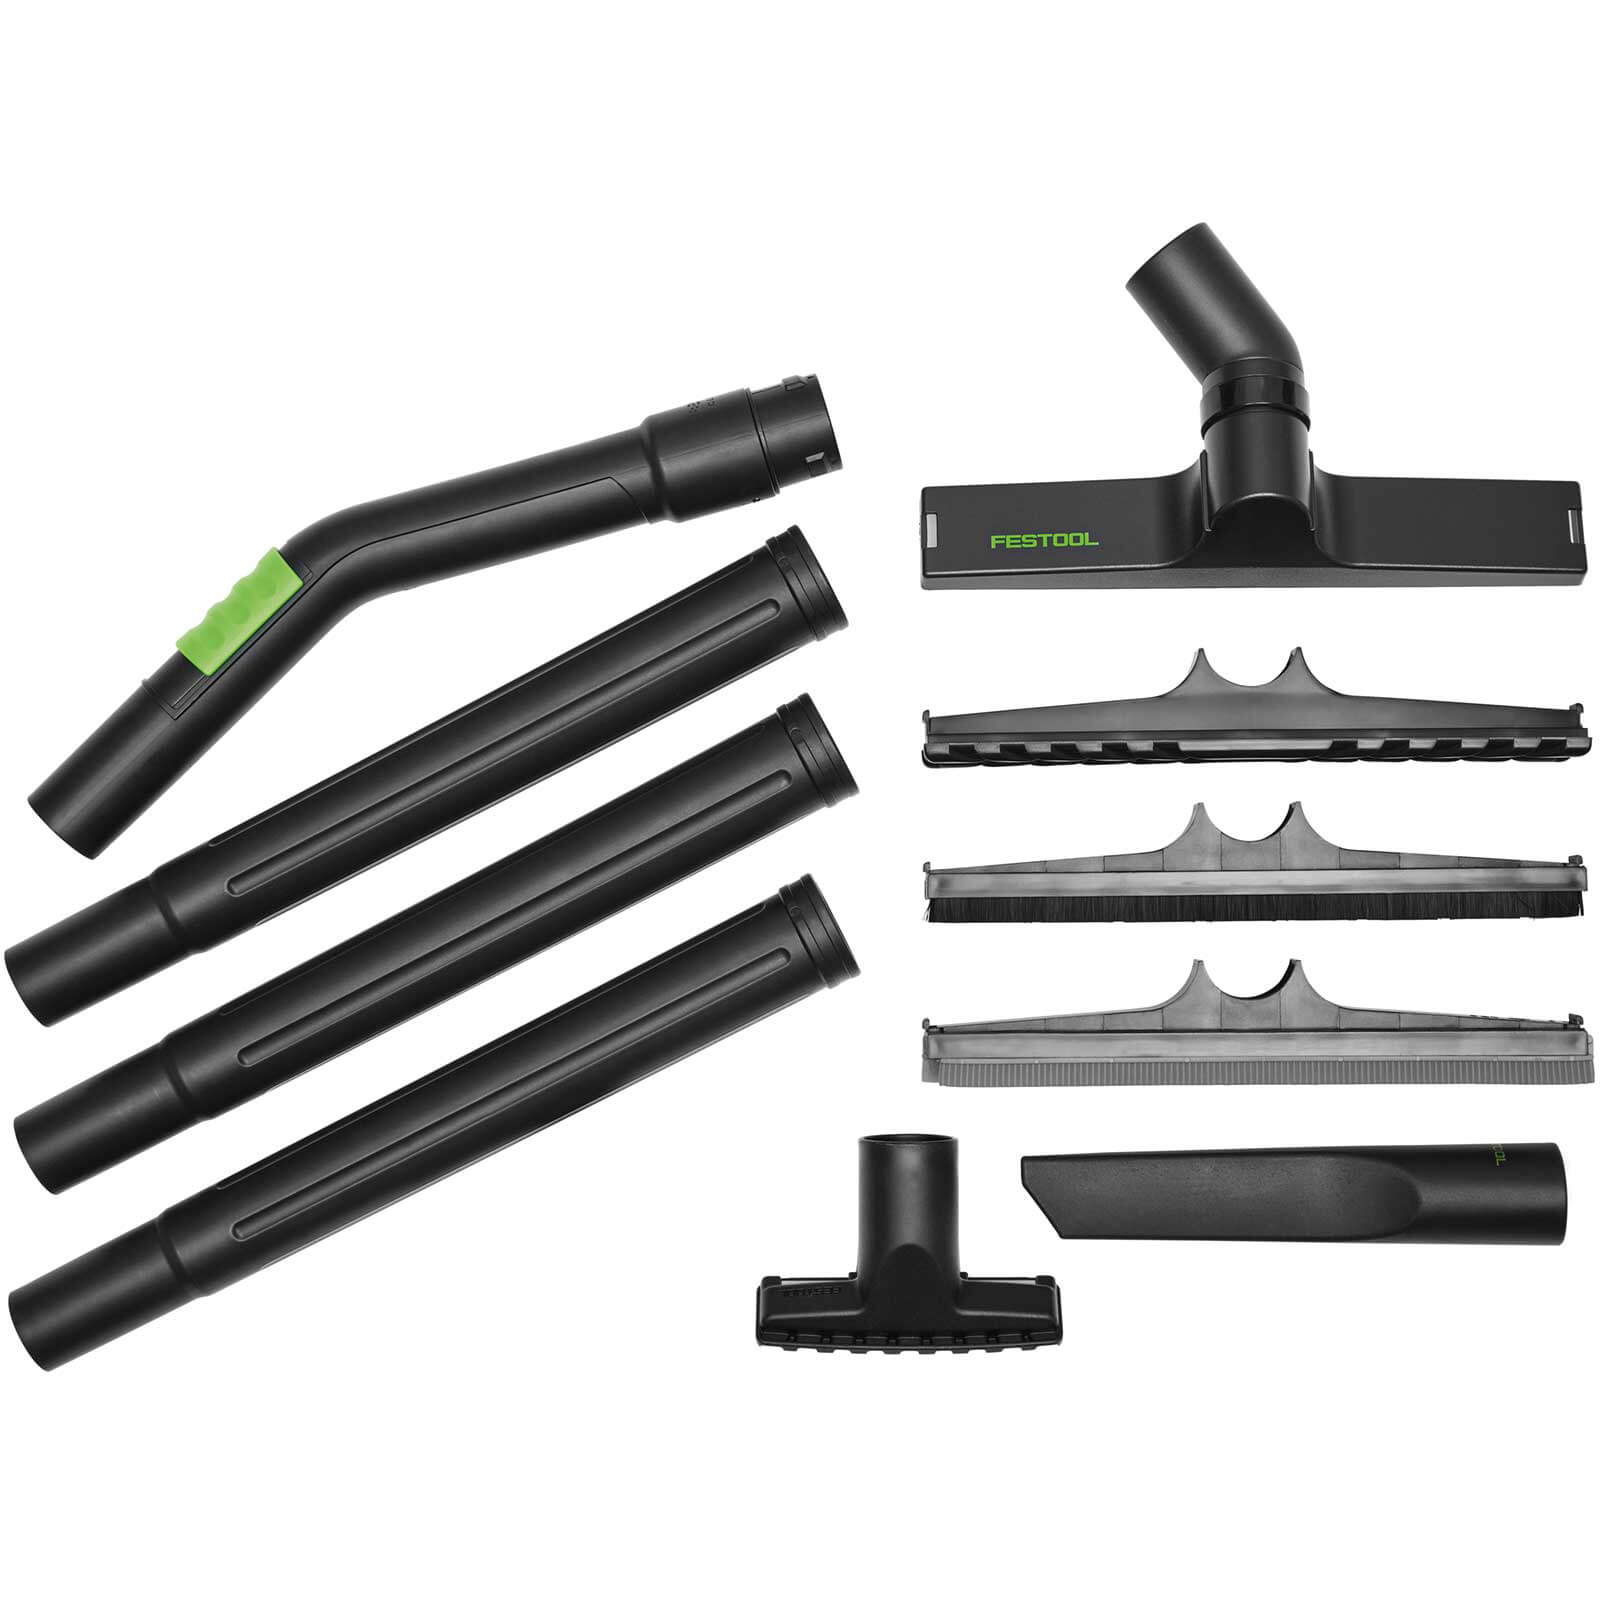 Festool D 27 36 S RS Cleaning Tool Set for Dust Extractors